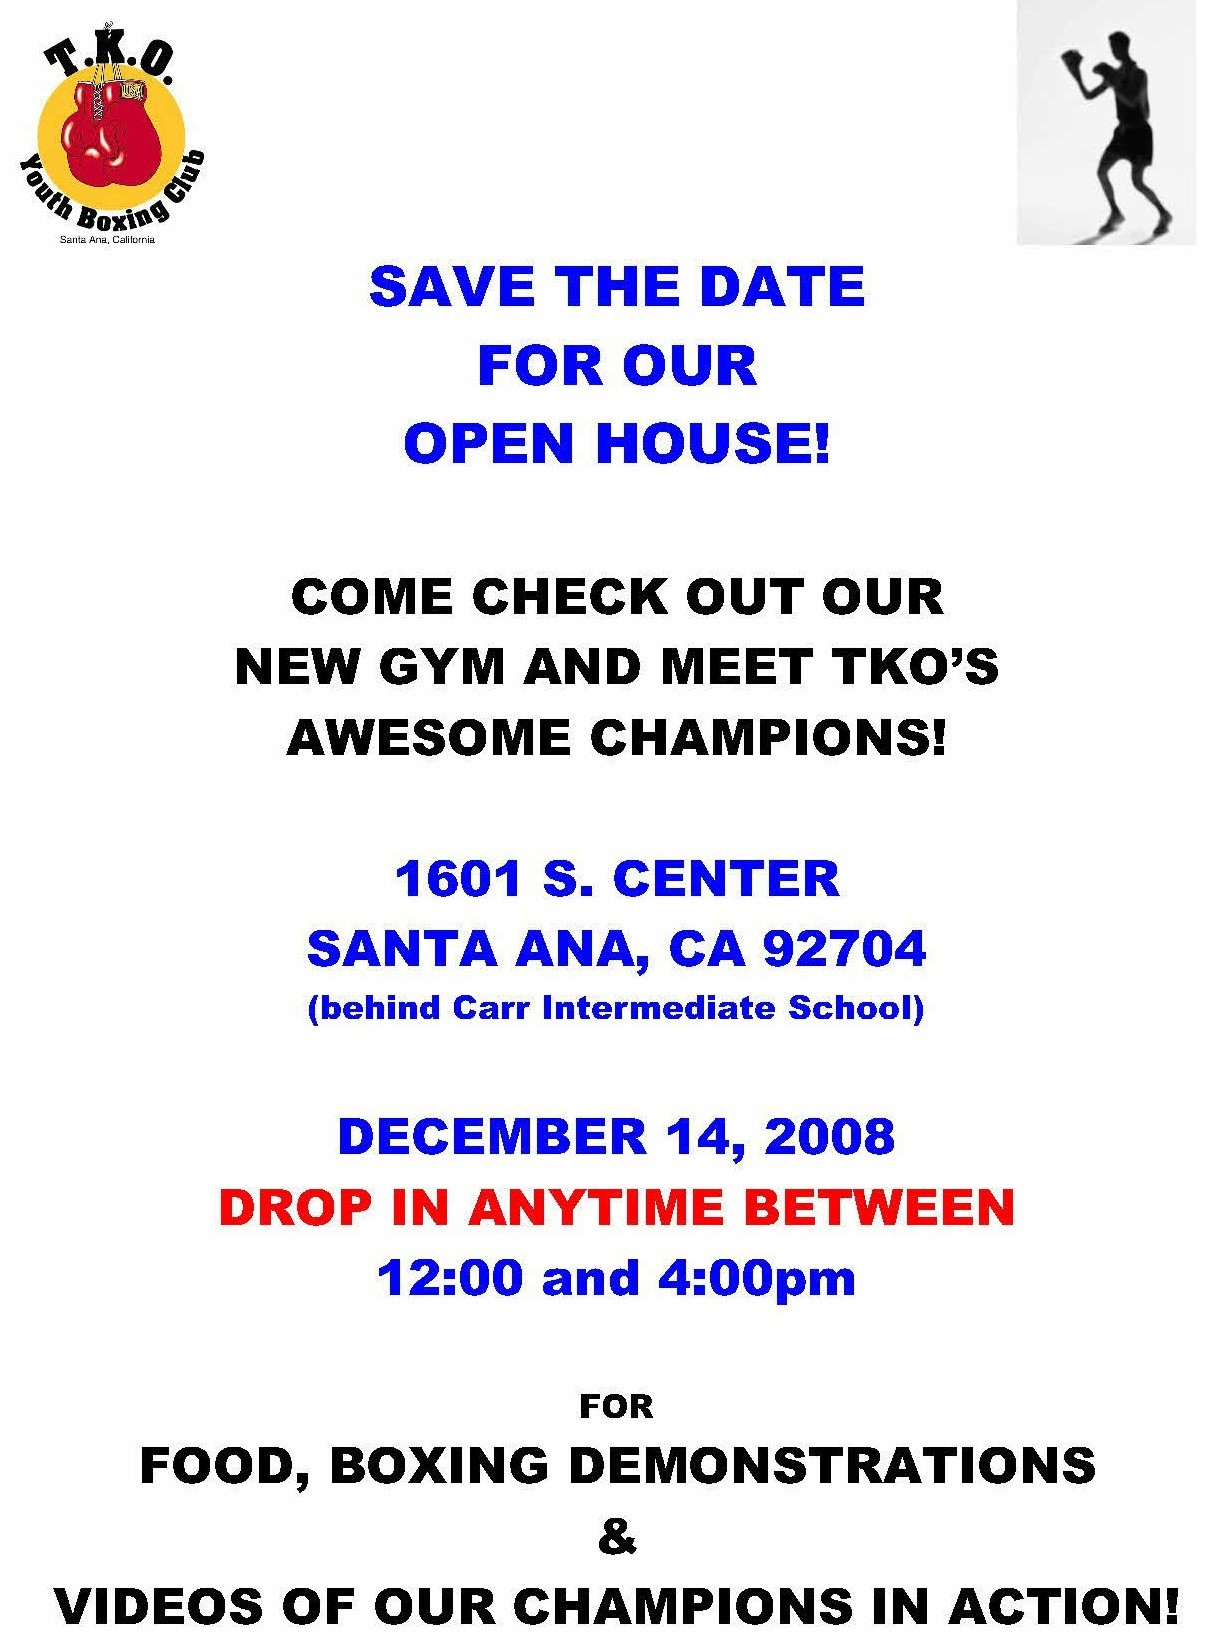 Santa Ana's TKO Boxing Club is having an open house today from 12 noon to 4 pm. Come by and support these young men who have found success as athletes […]